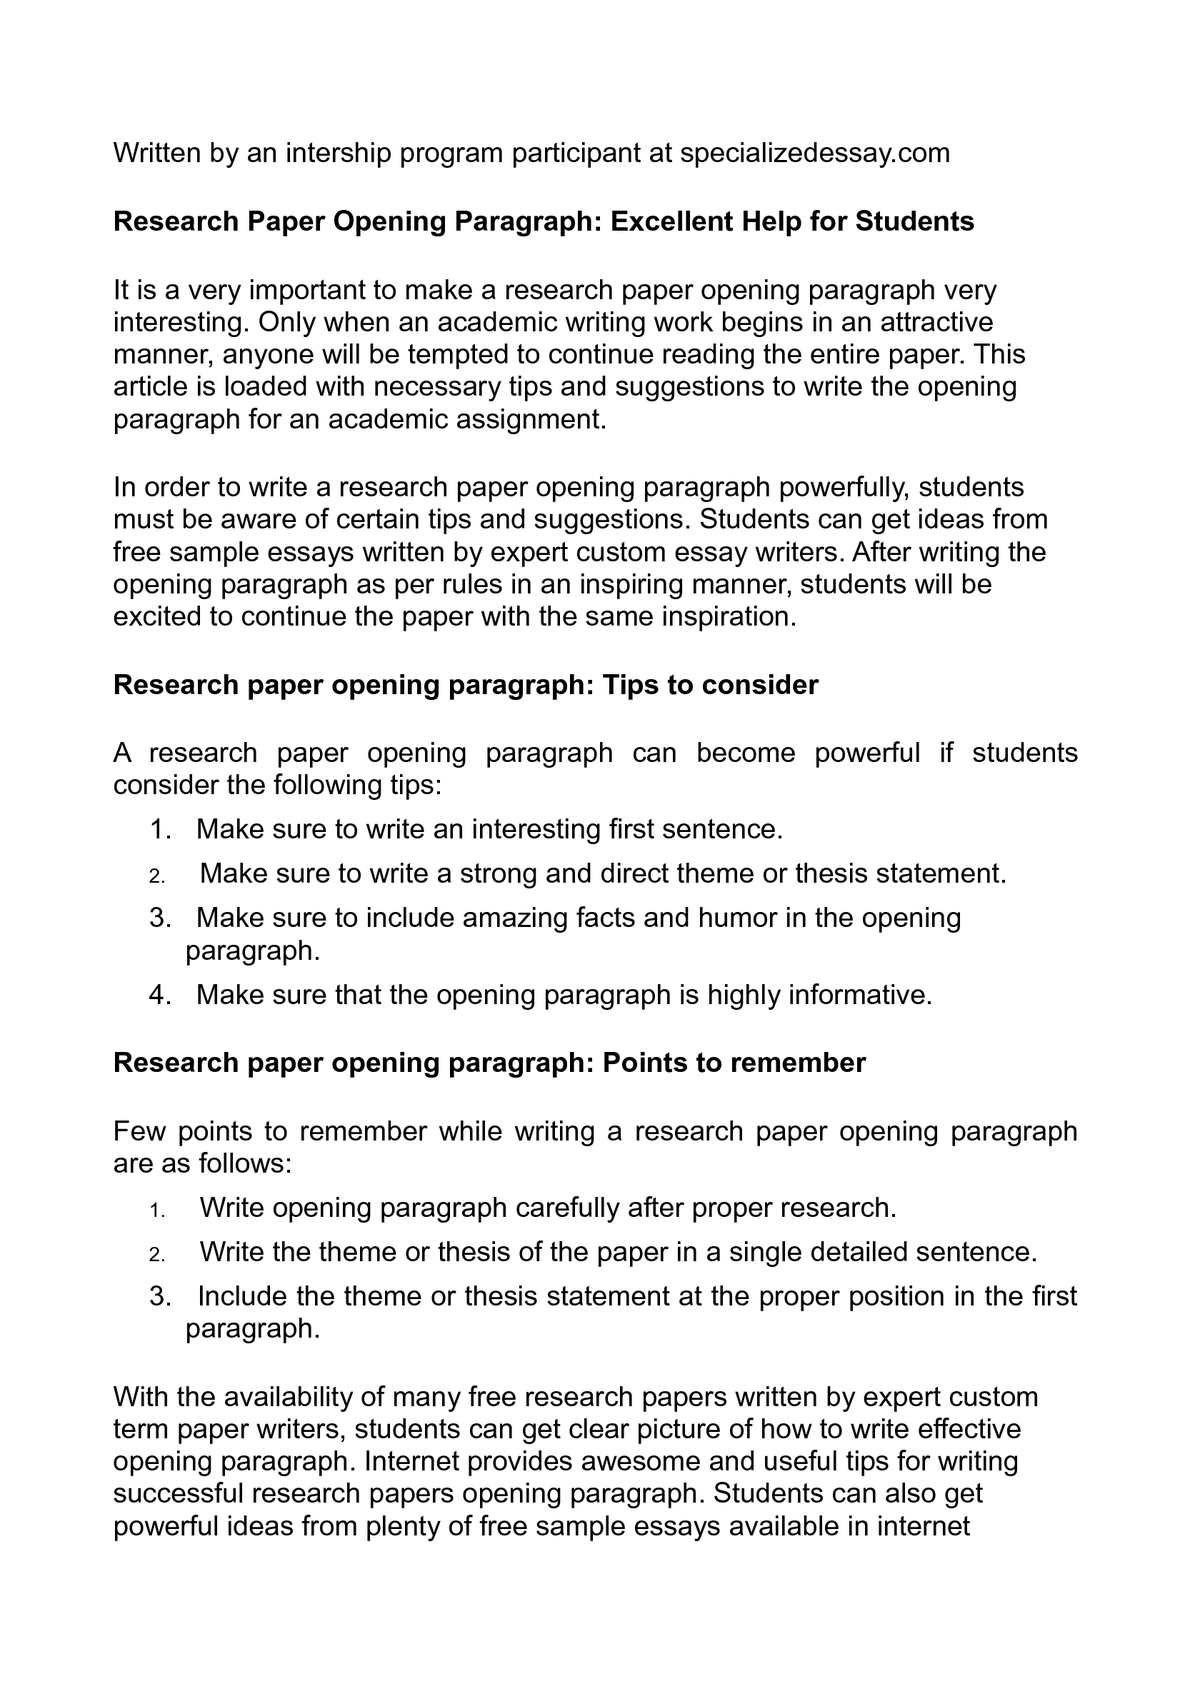 003 Good Introduction Sentences For Research Paper Excellent A Introductory Paragraph Conclusion Full